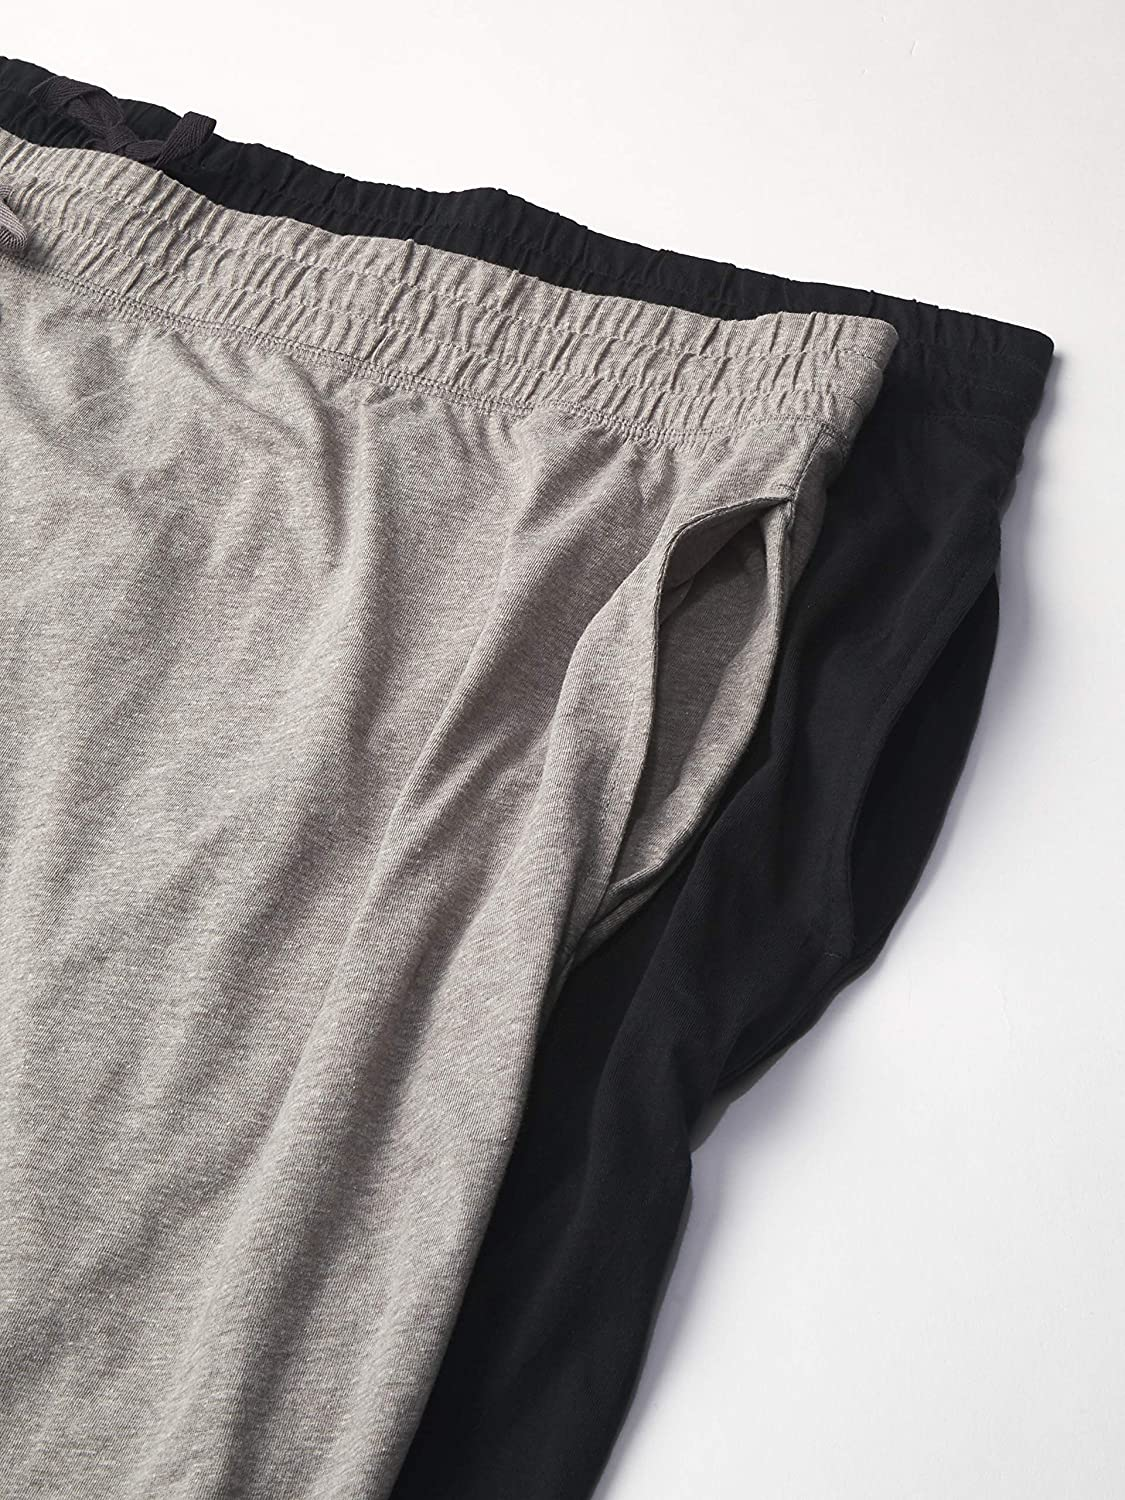 Fruit of the Loom Men's Jersey Knit Jogger Sleep Pant (1 and 2 Packs)